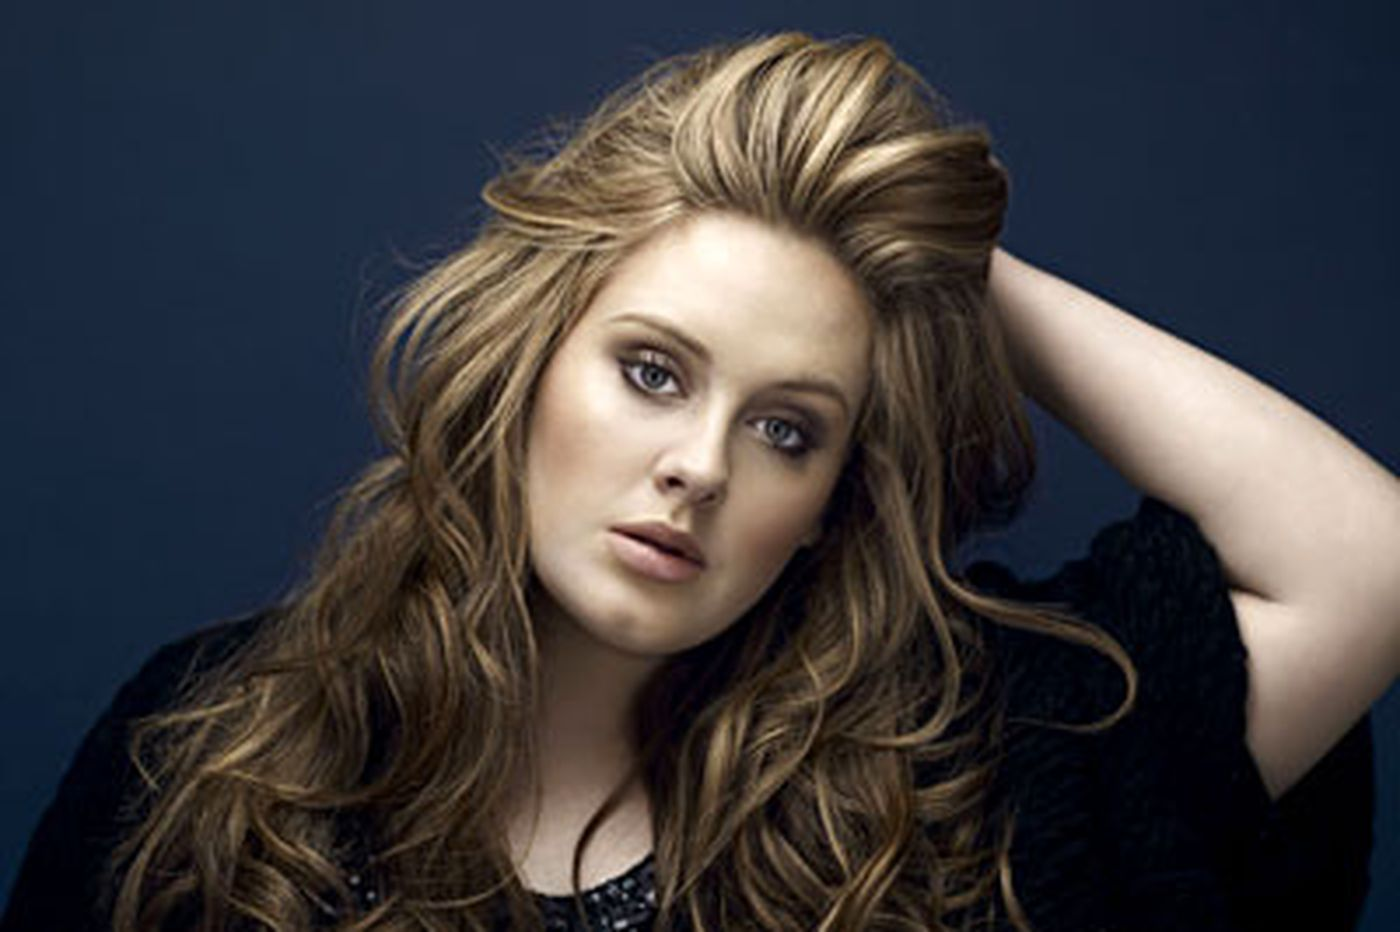 Sideshow: Adele cancels her tour